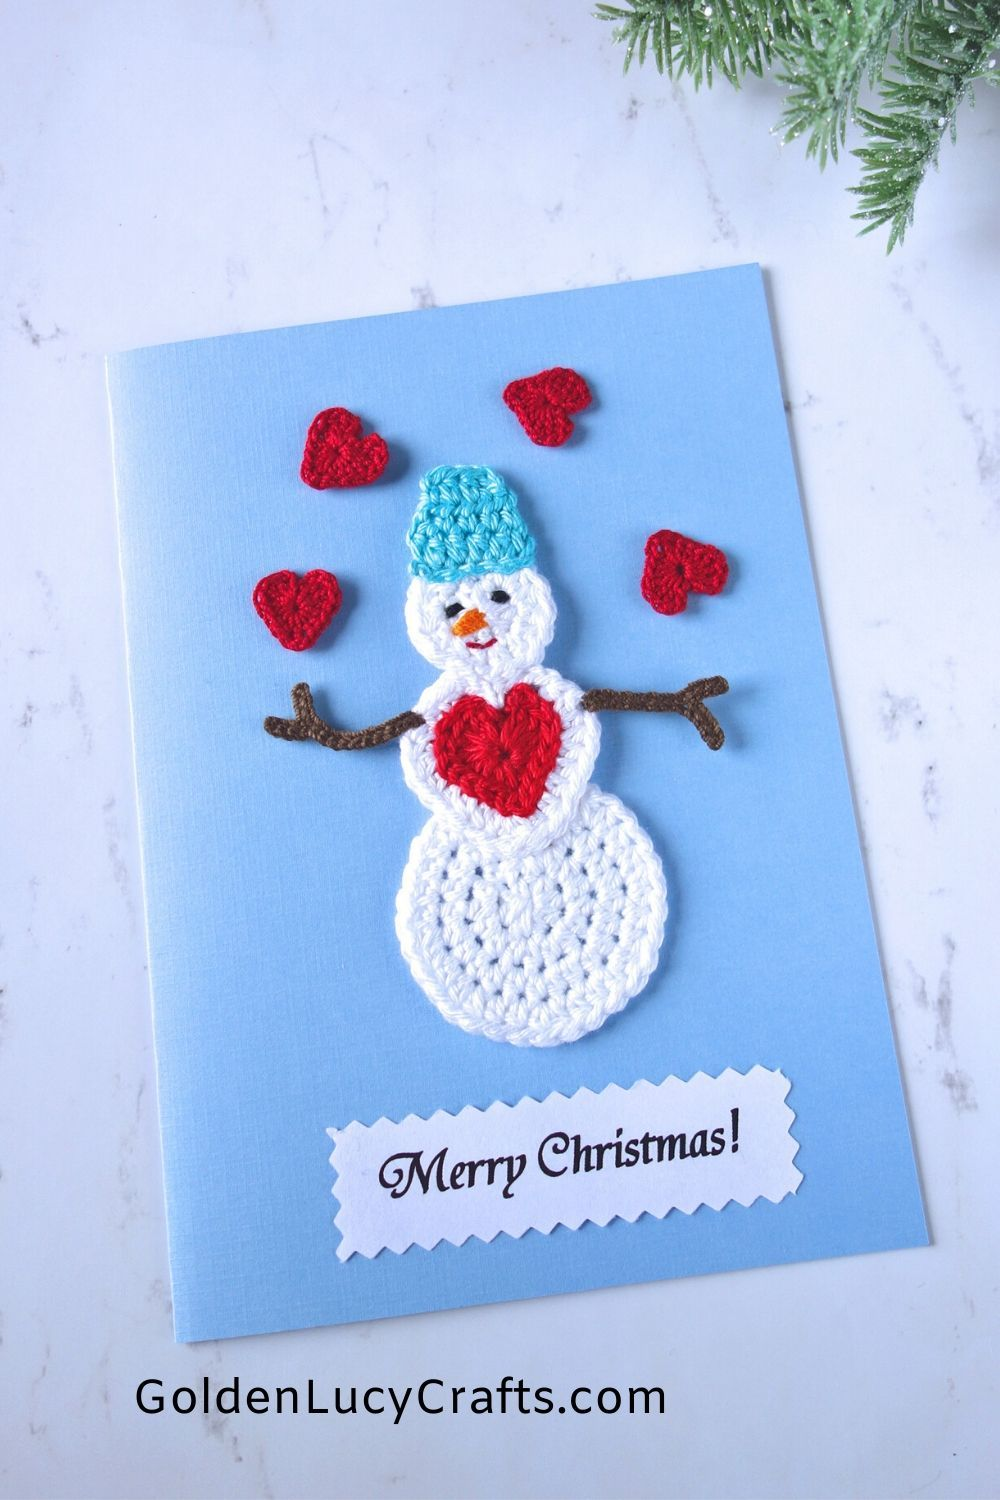 15 Diy Christmas Cards Embellished With Crochet Appliques Diy Christmas Cards Christmas Cards Handmade Homemade Christmas Cards